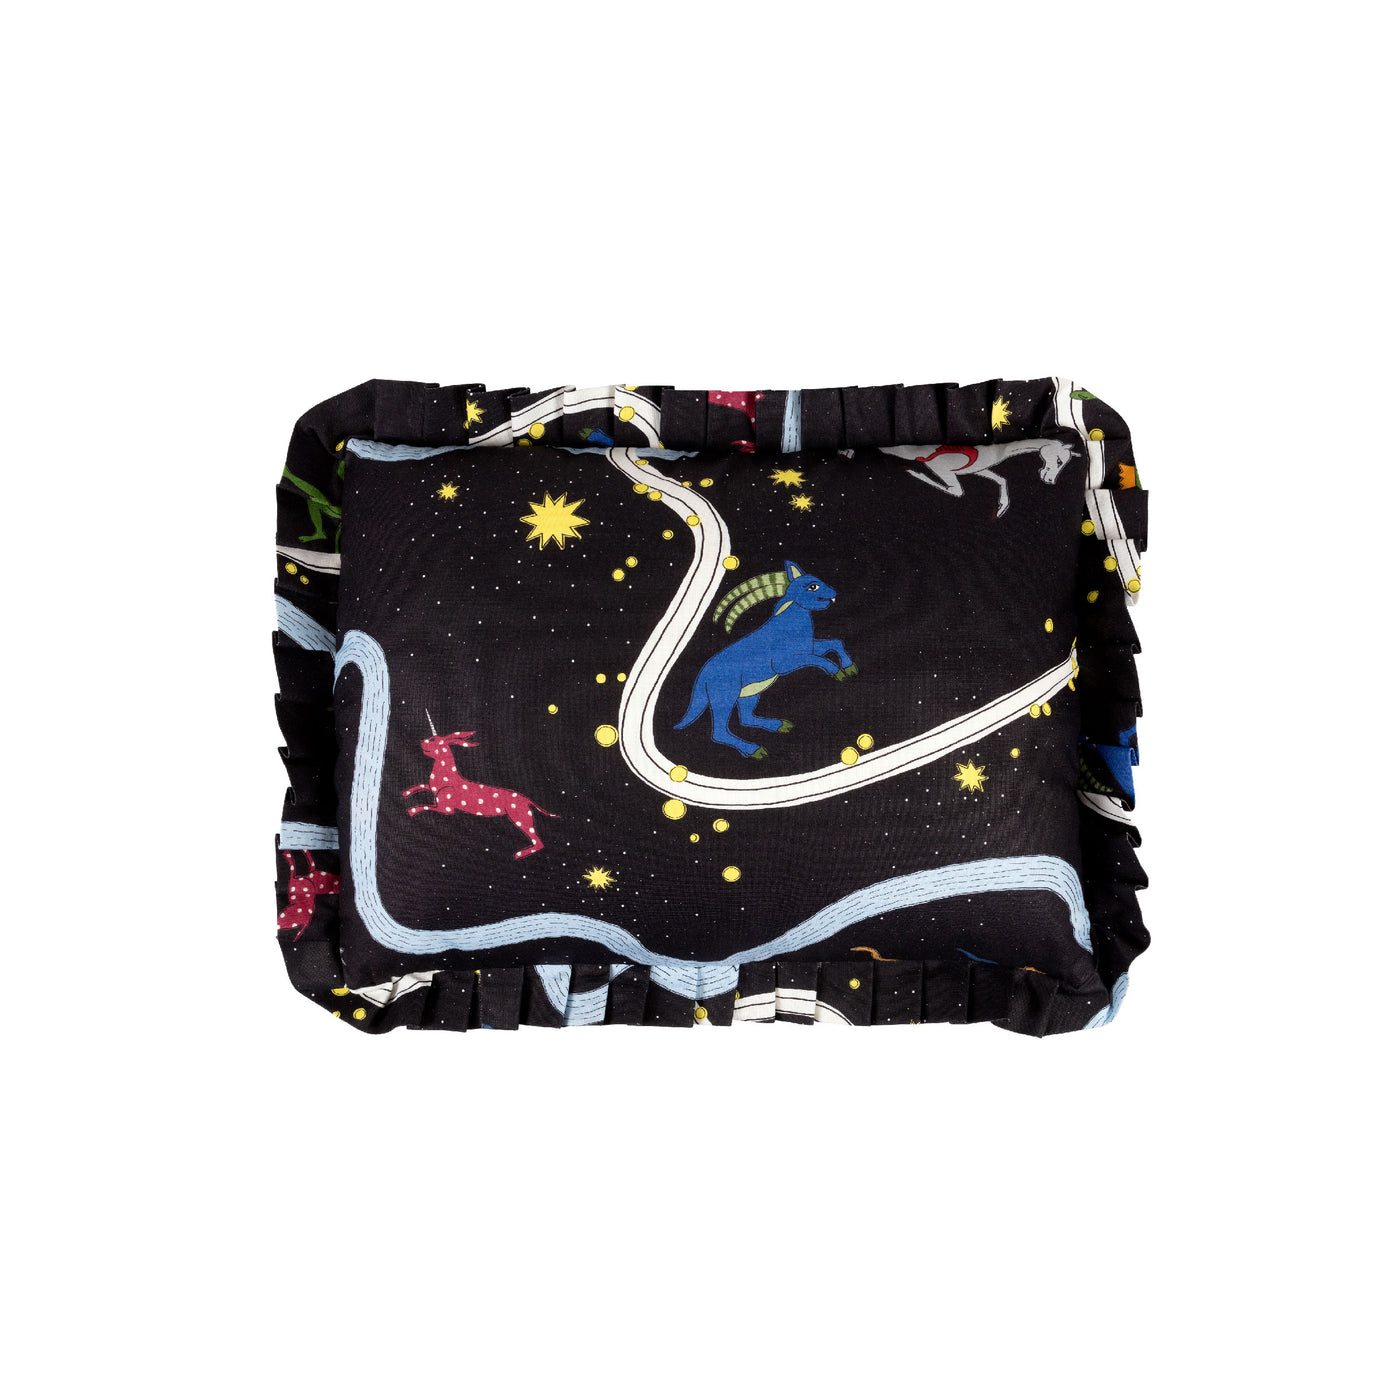 Asteria's Folly Cushion: Night